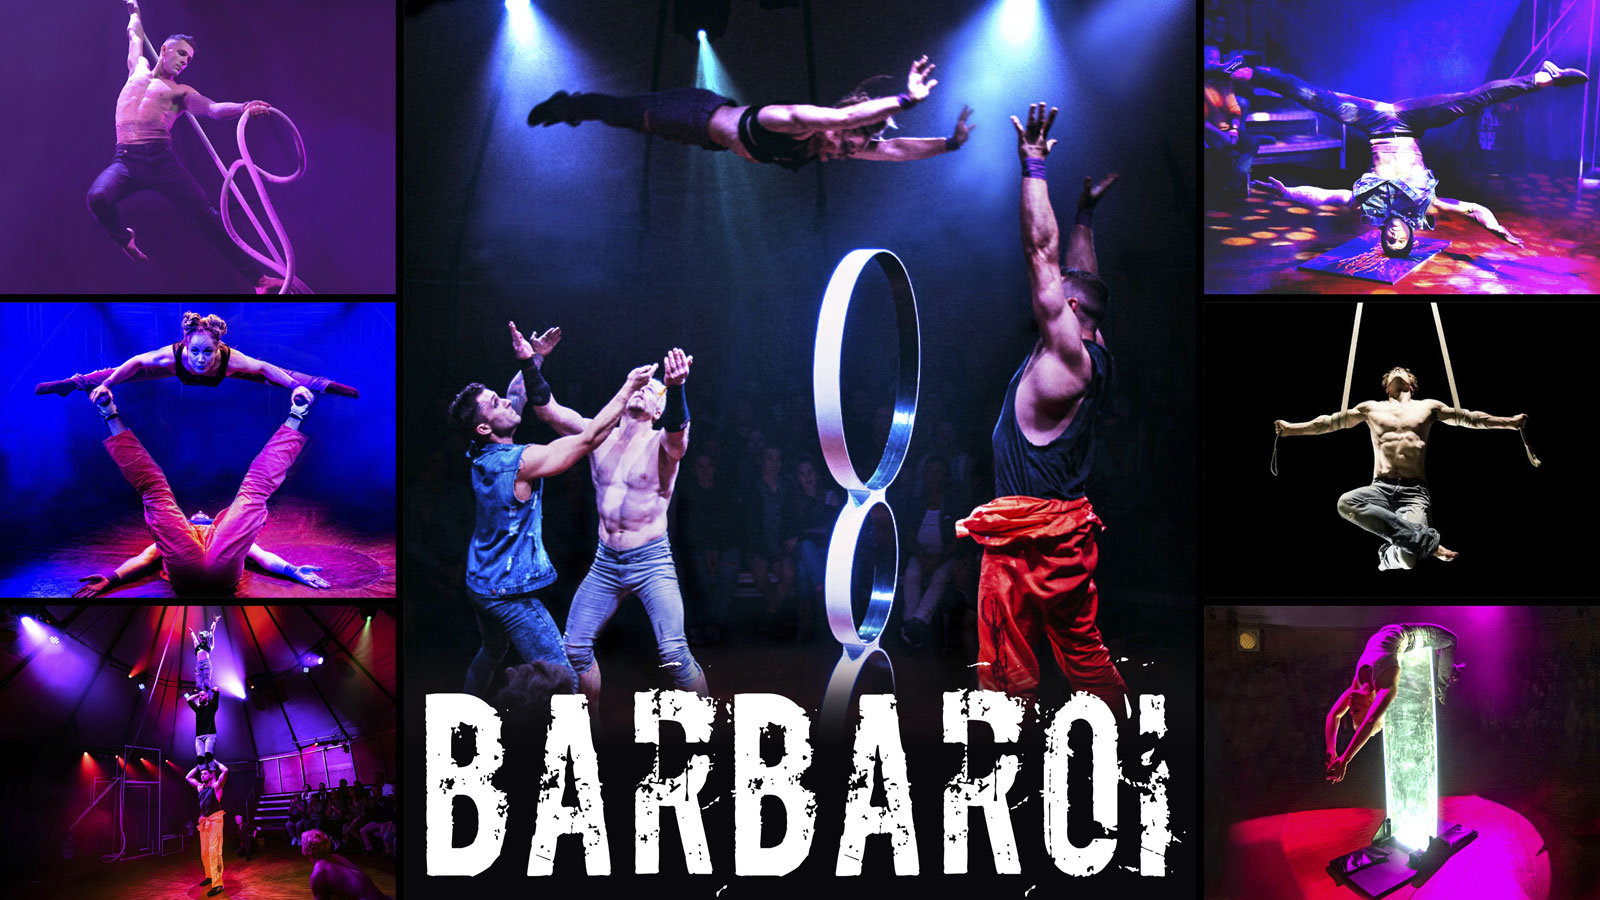 A collage of images from the circus show barbaroi